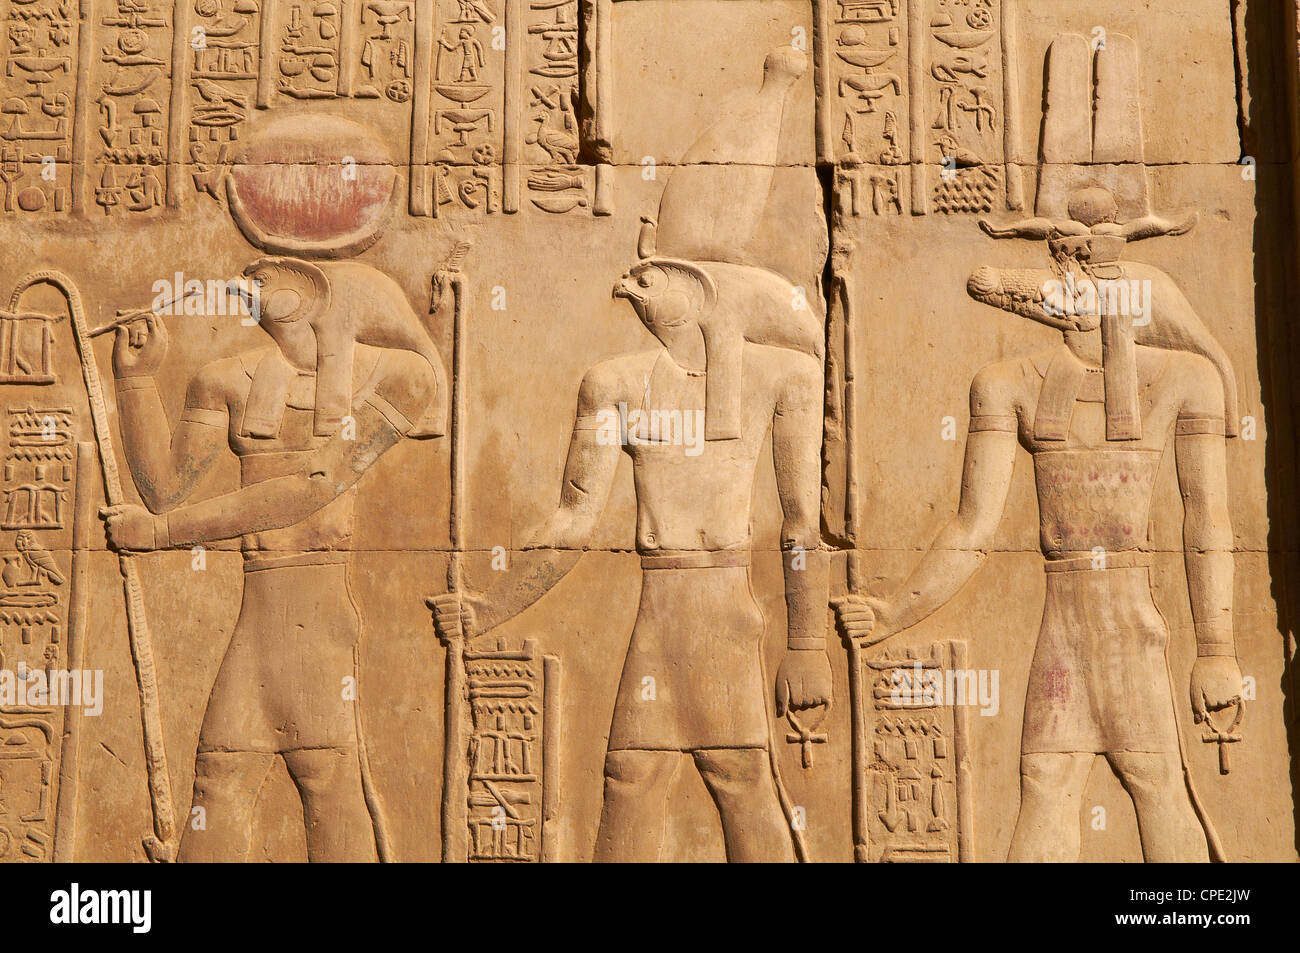 Bas relief, Temple of Sobek and Haroeris, Kom Ombo, Egypt, North Africa, Africa - Stock Image